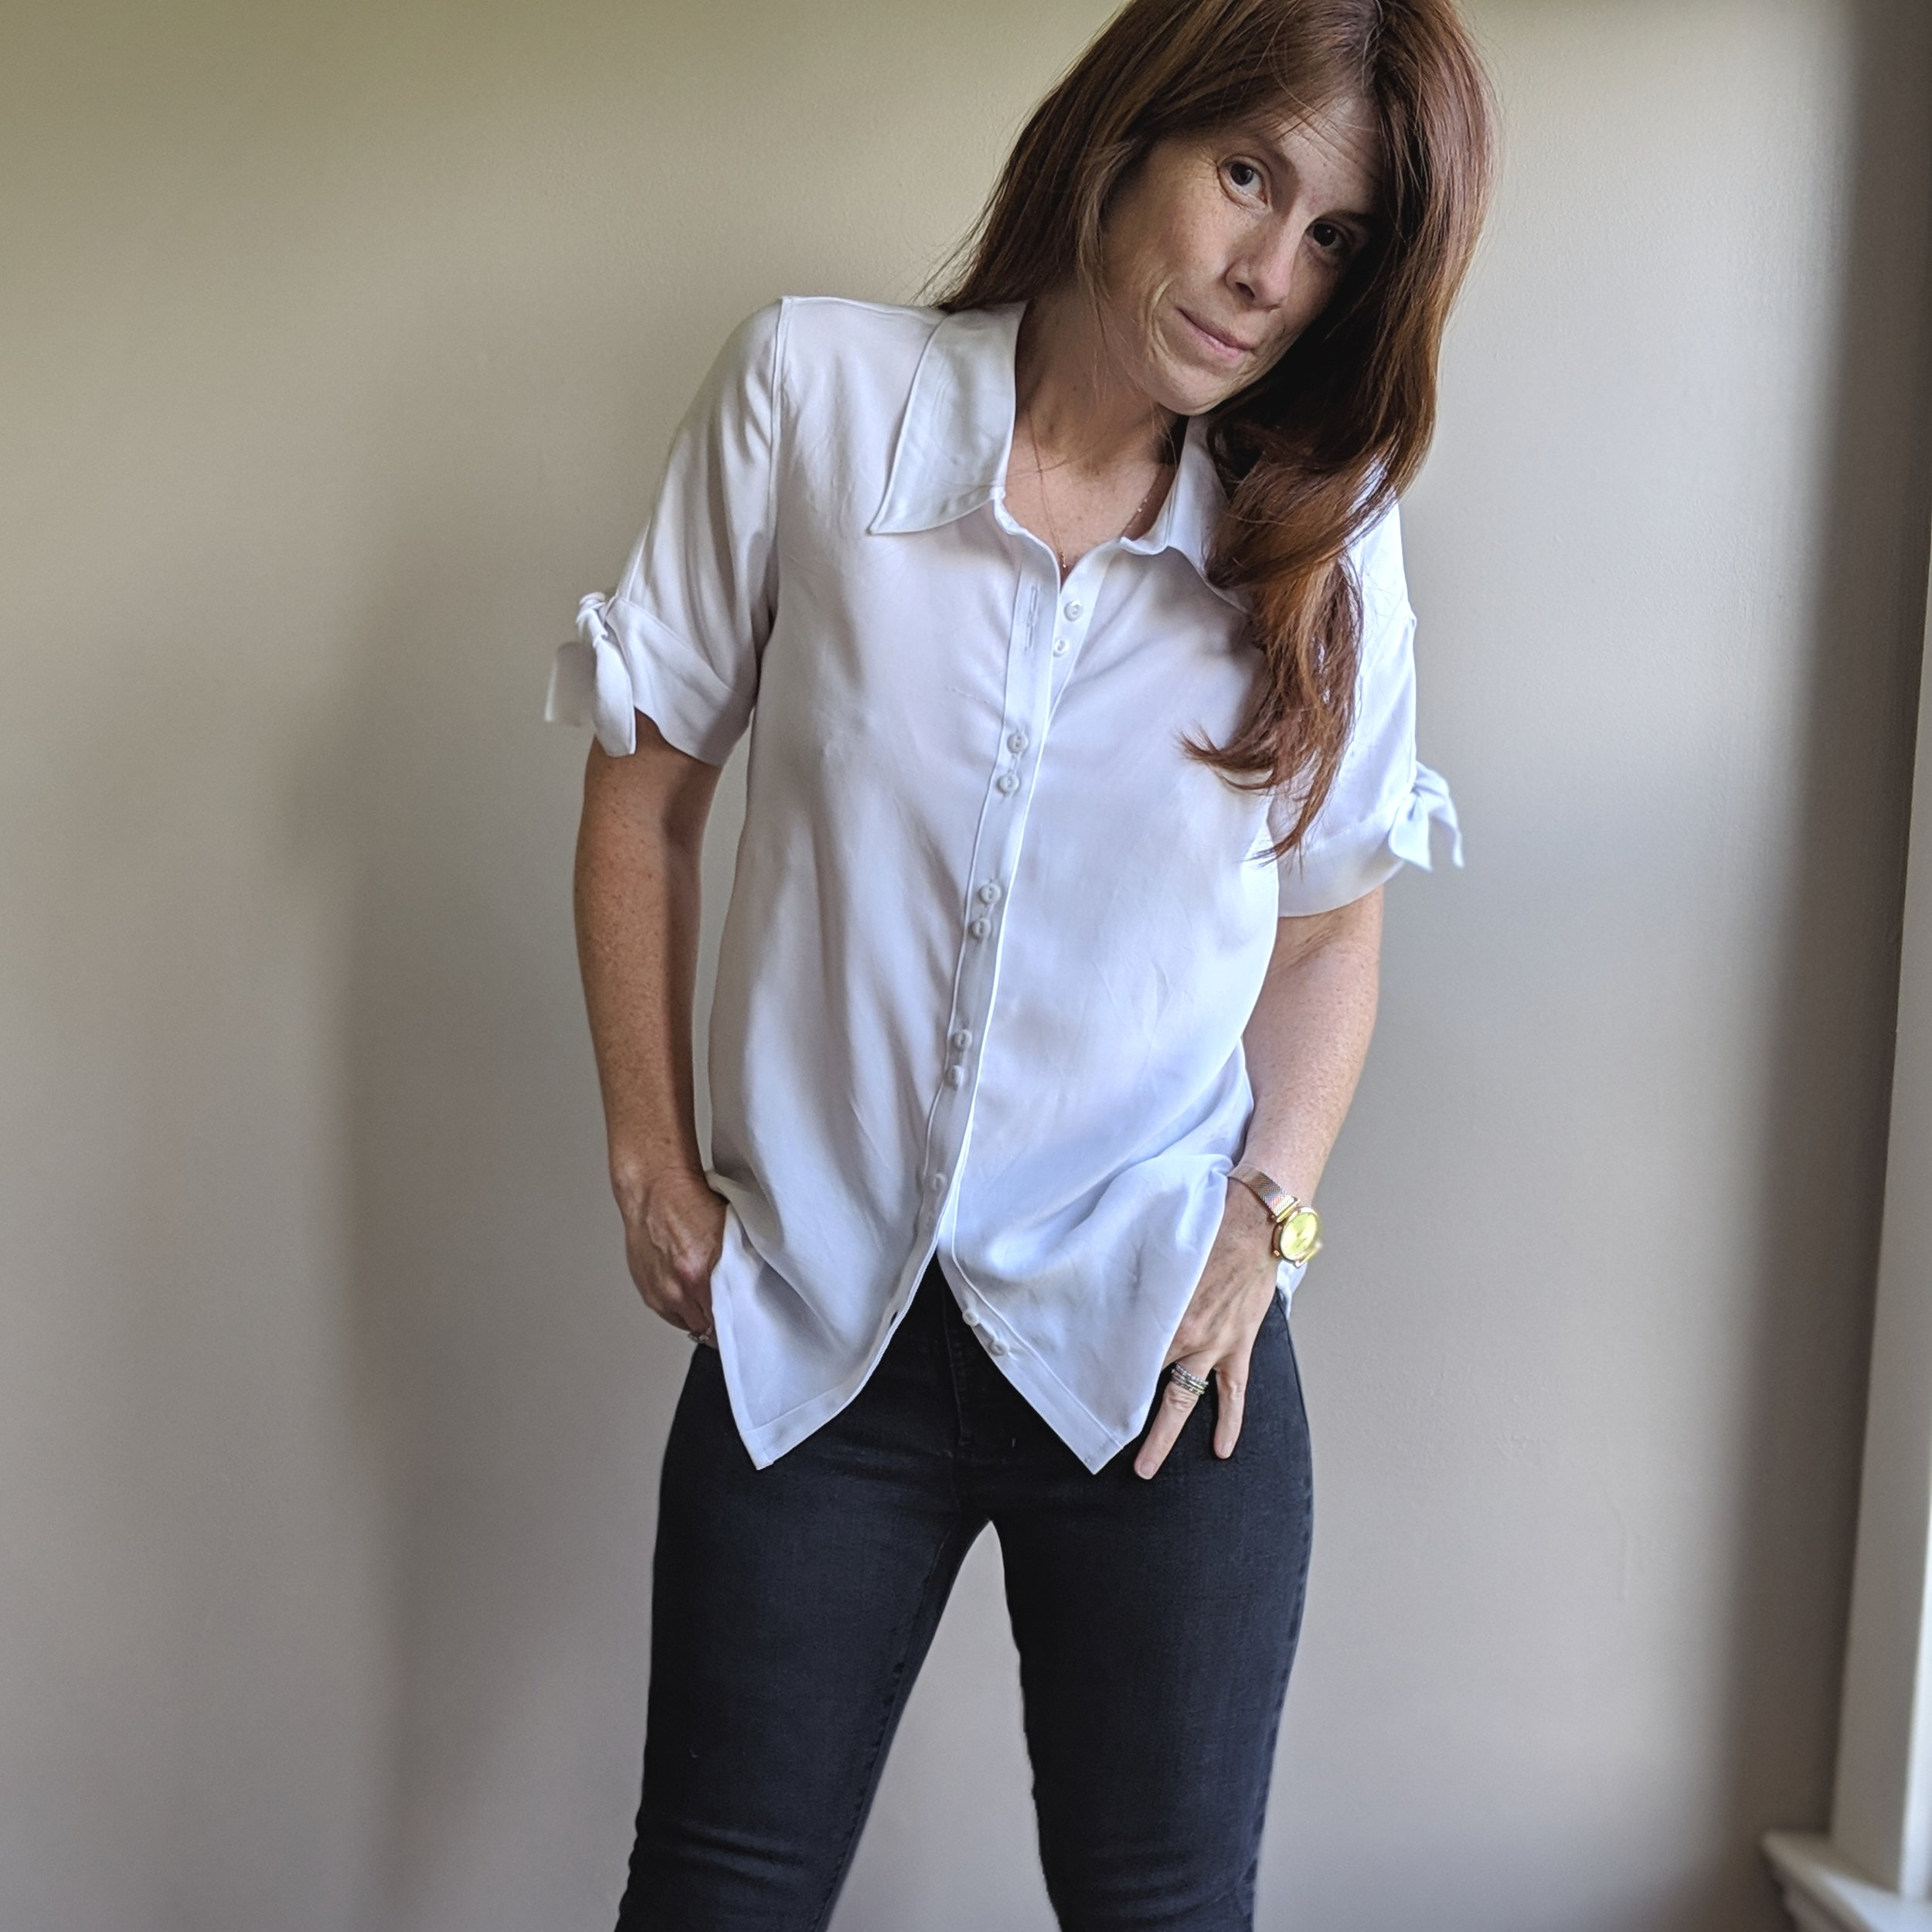 Cheyenne  in white rayon challis. Black  Ginger jeans .